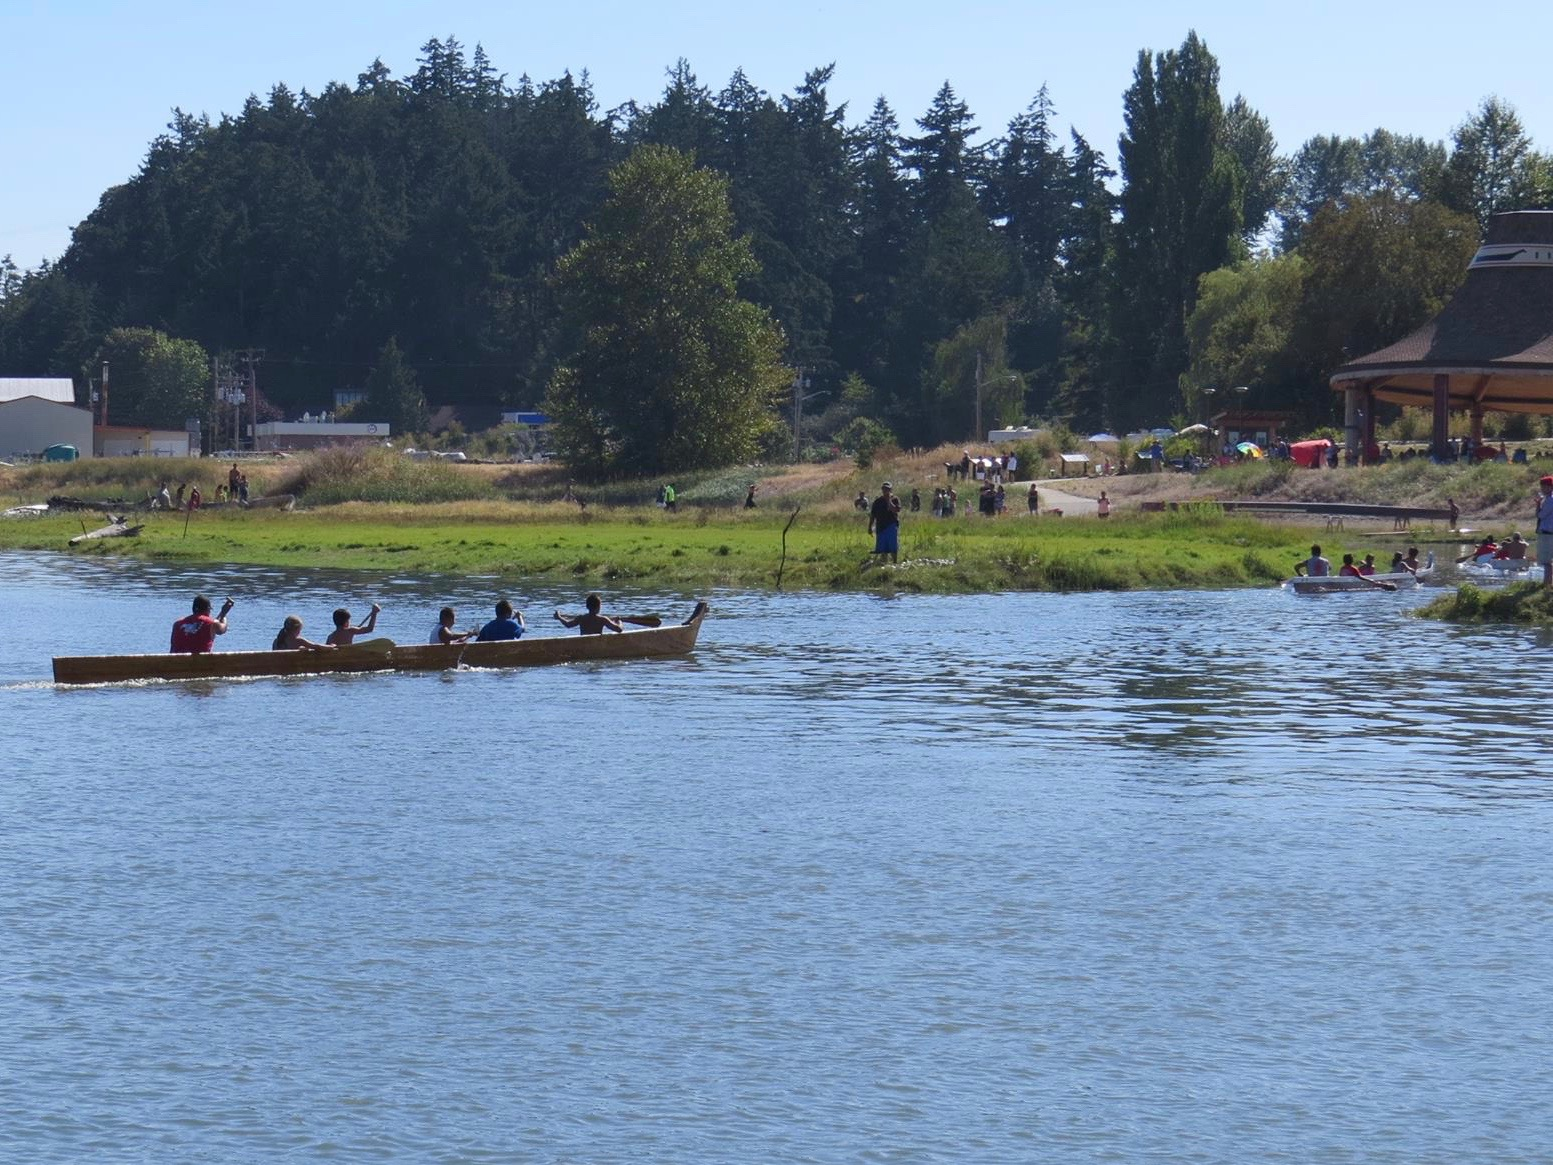 Swinomish Tribe faces racist and violent threats due to fishing